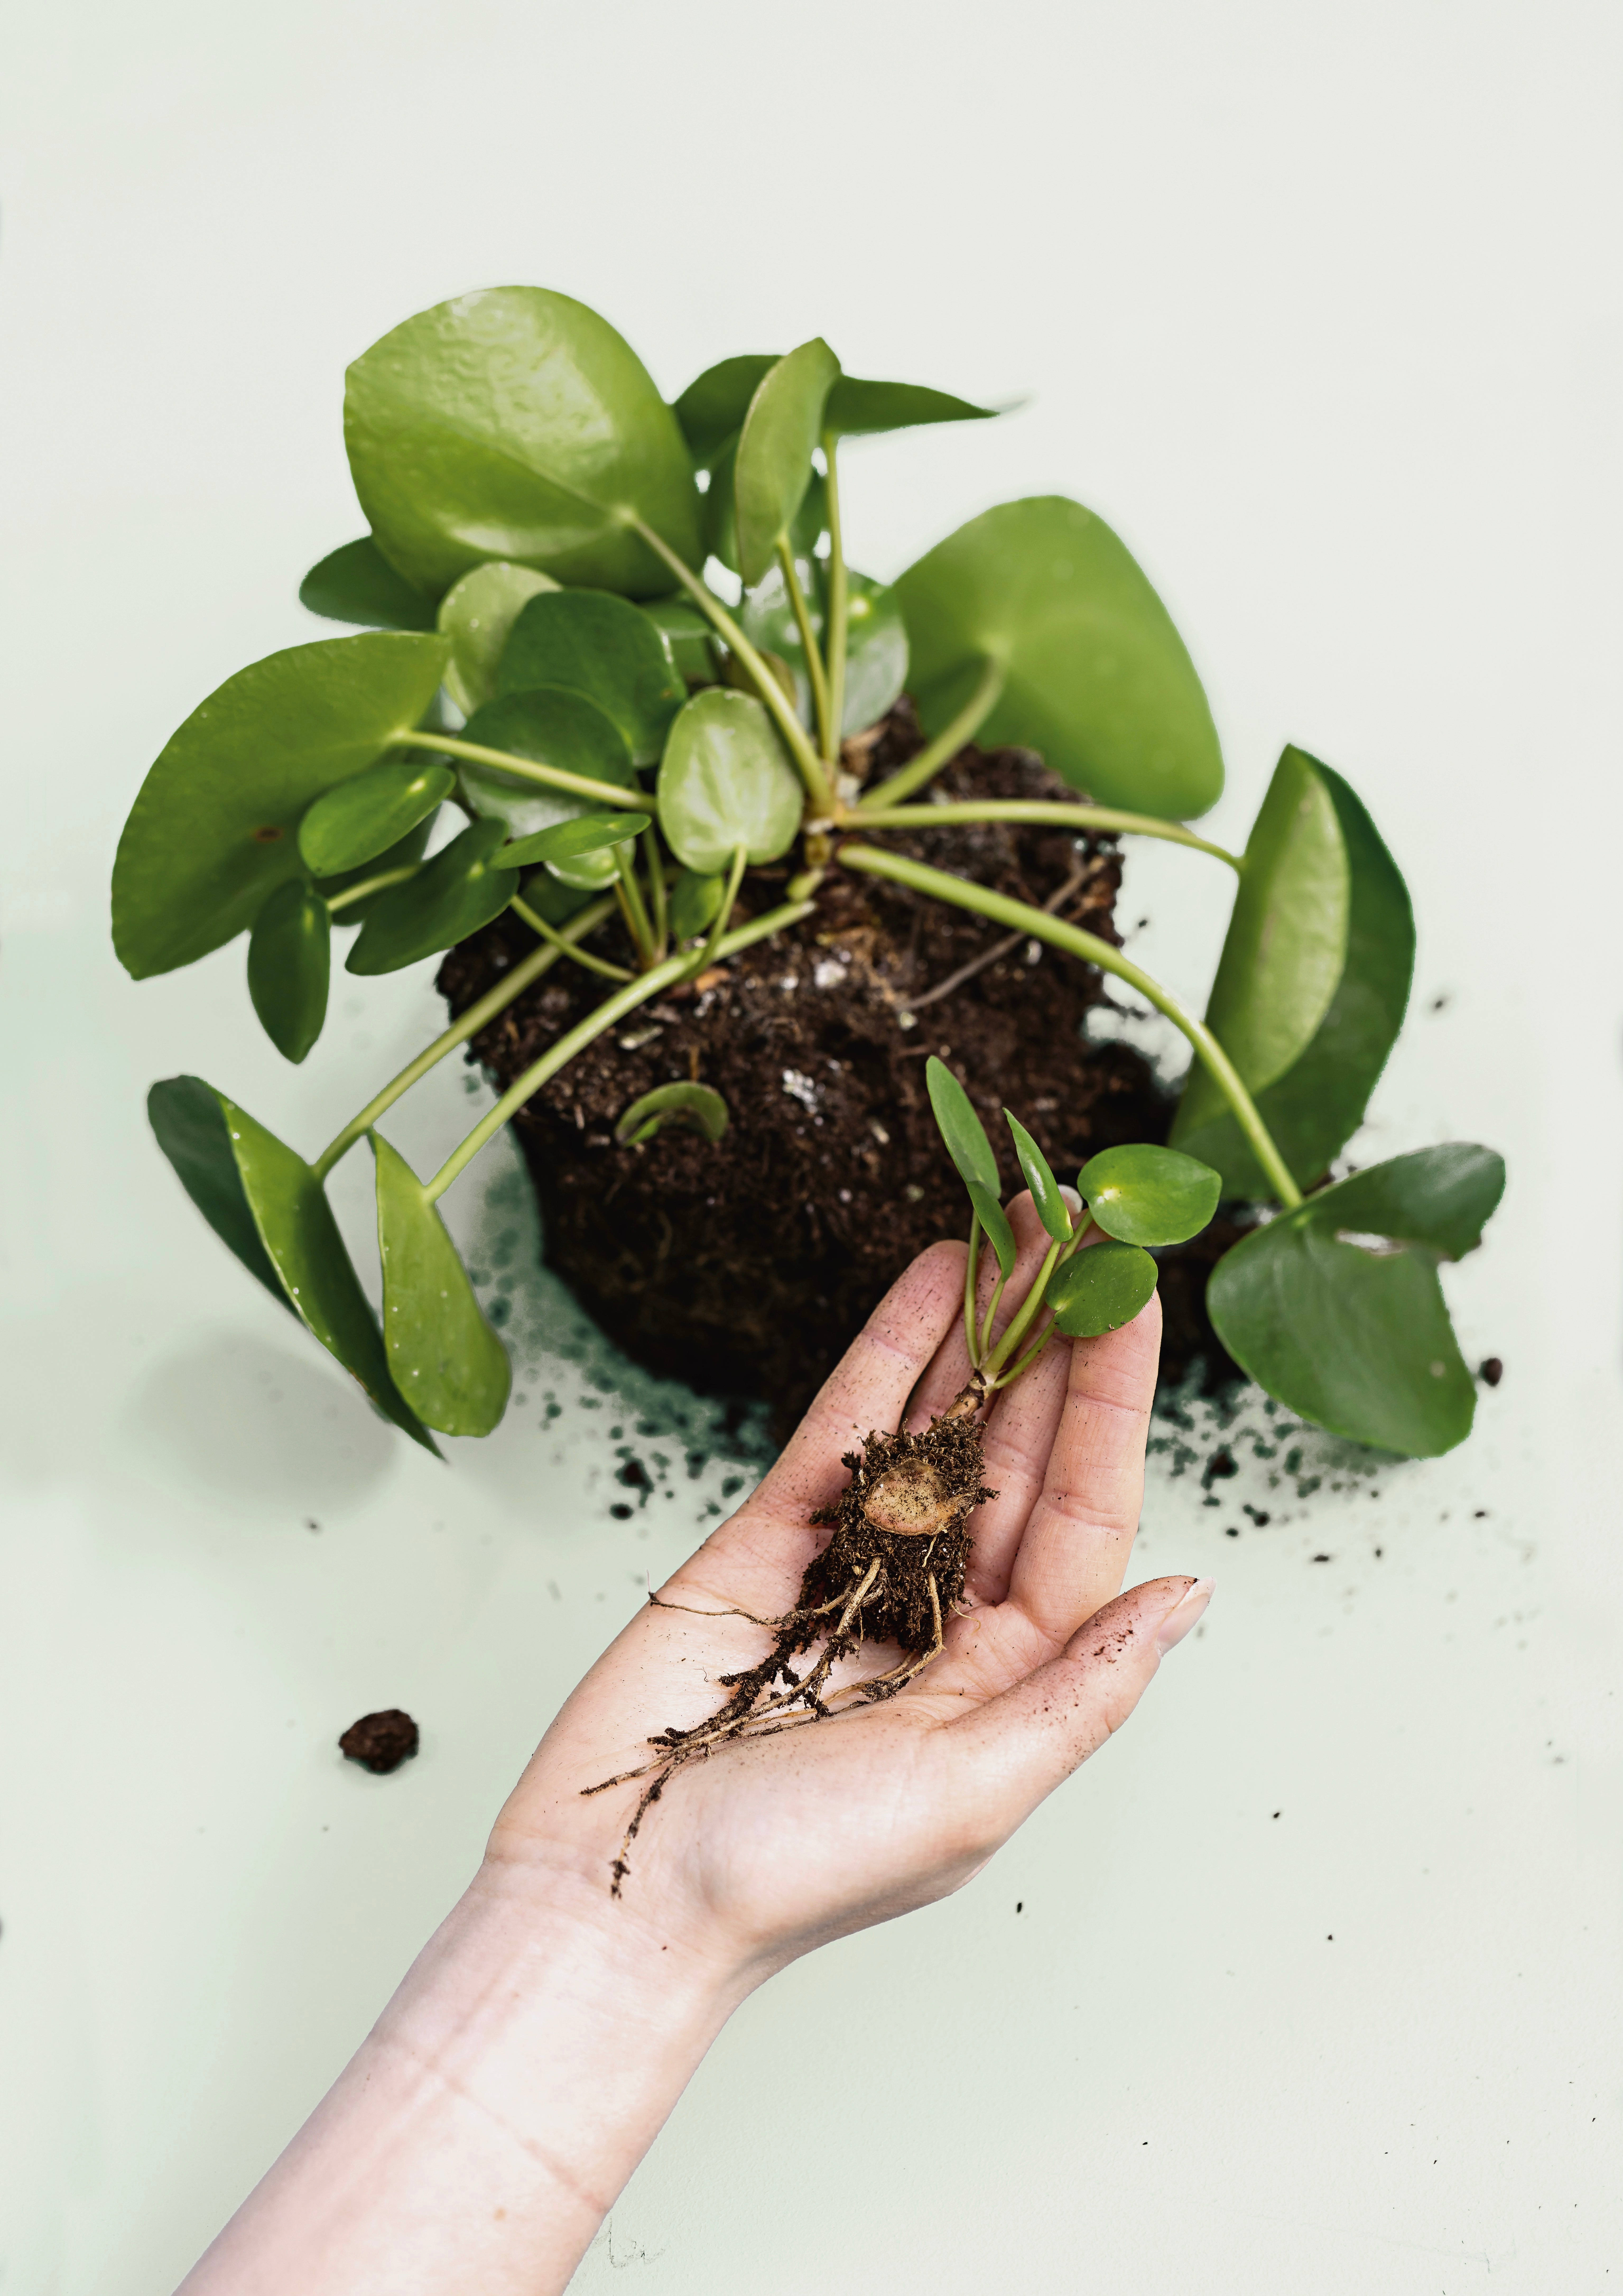 Ciepielwski also suggests making additional pilea plants too. You can simply remove smaller plantlets from the rootball of a mother plant.